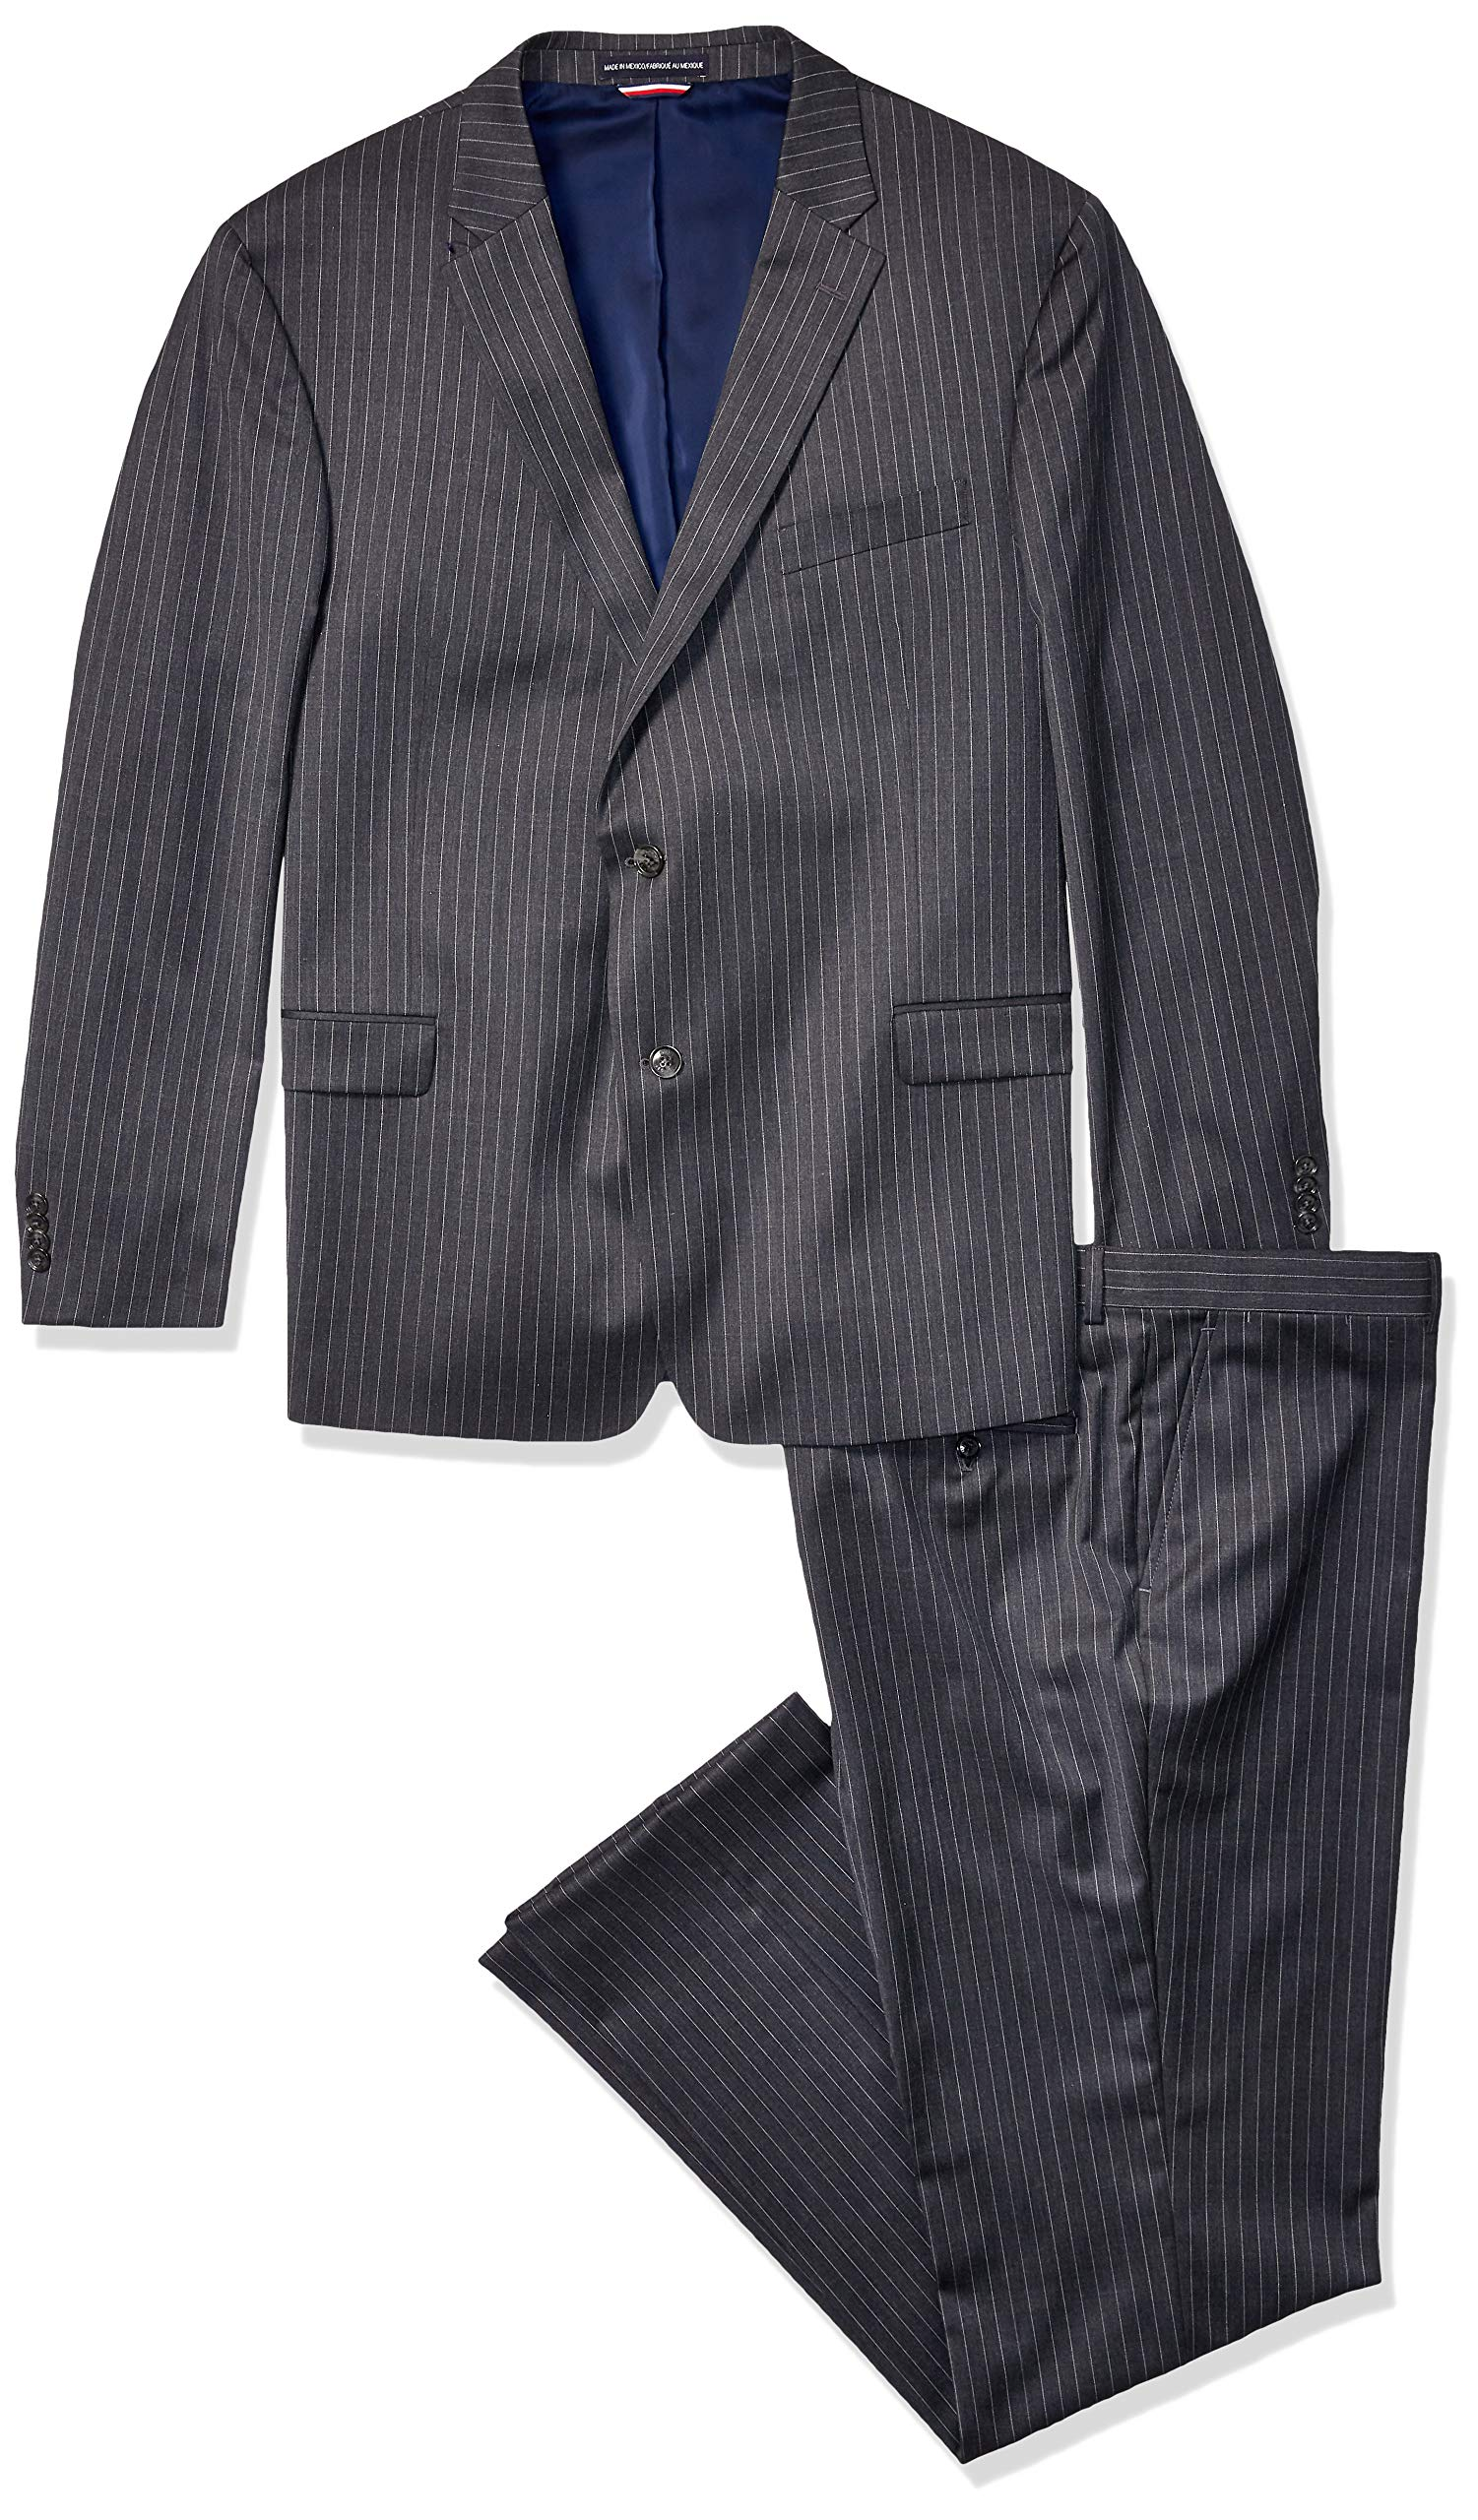 Tommy Hilfiger Men's Big and Tall Modern Fit Performance Suit with Stretch, Charcoal Pinstripe, 50R